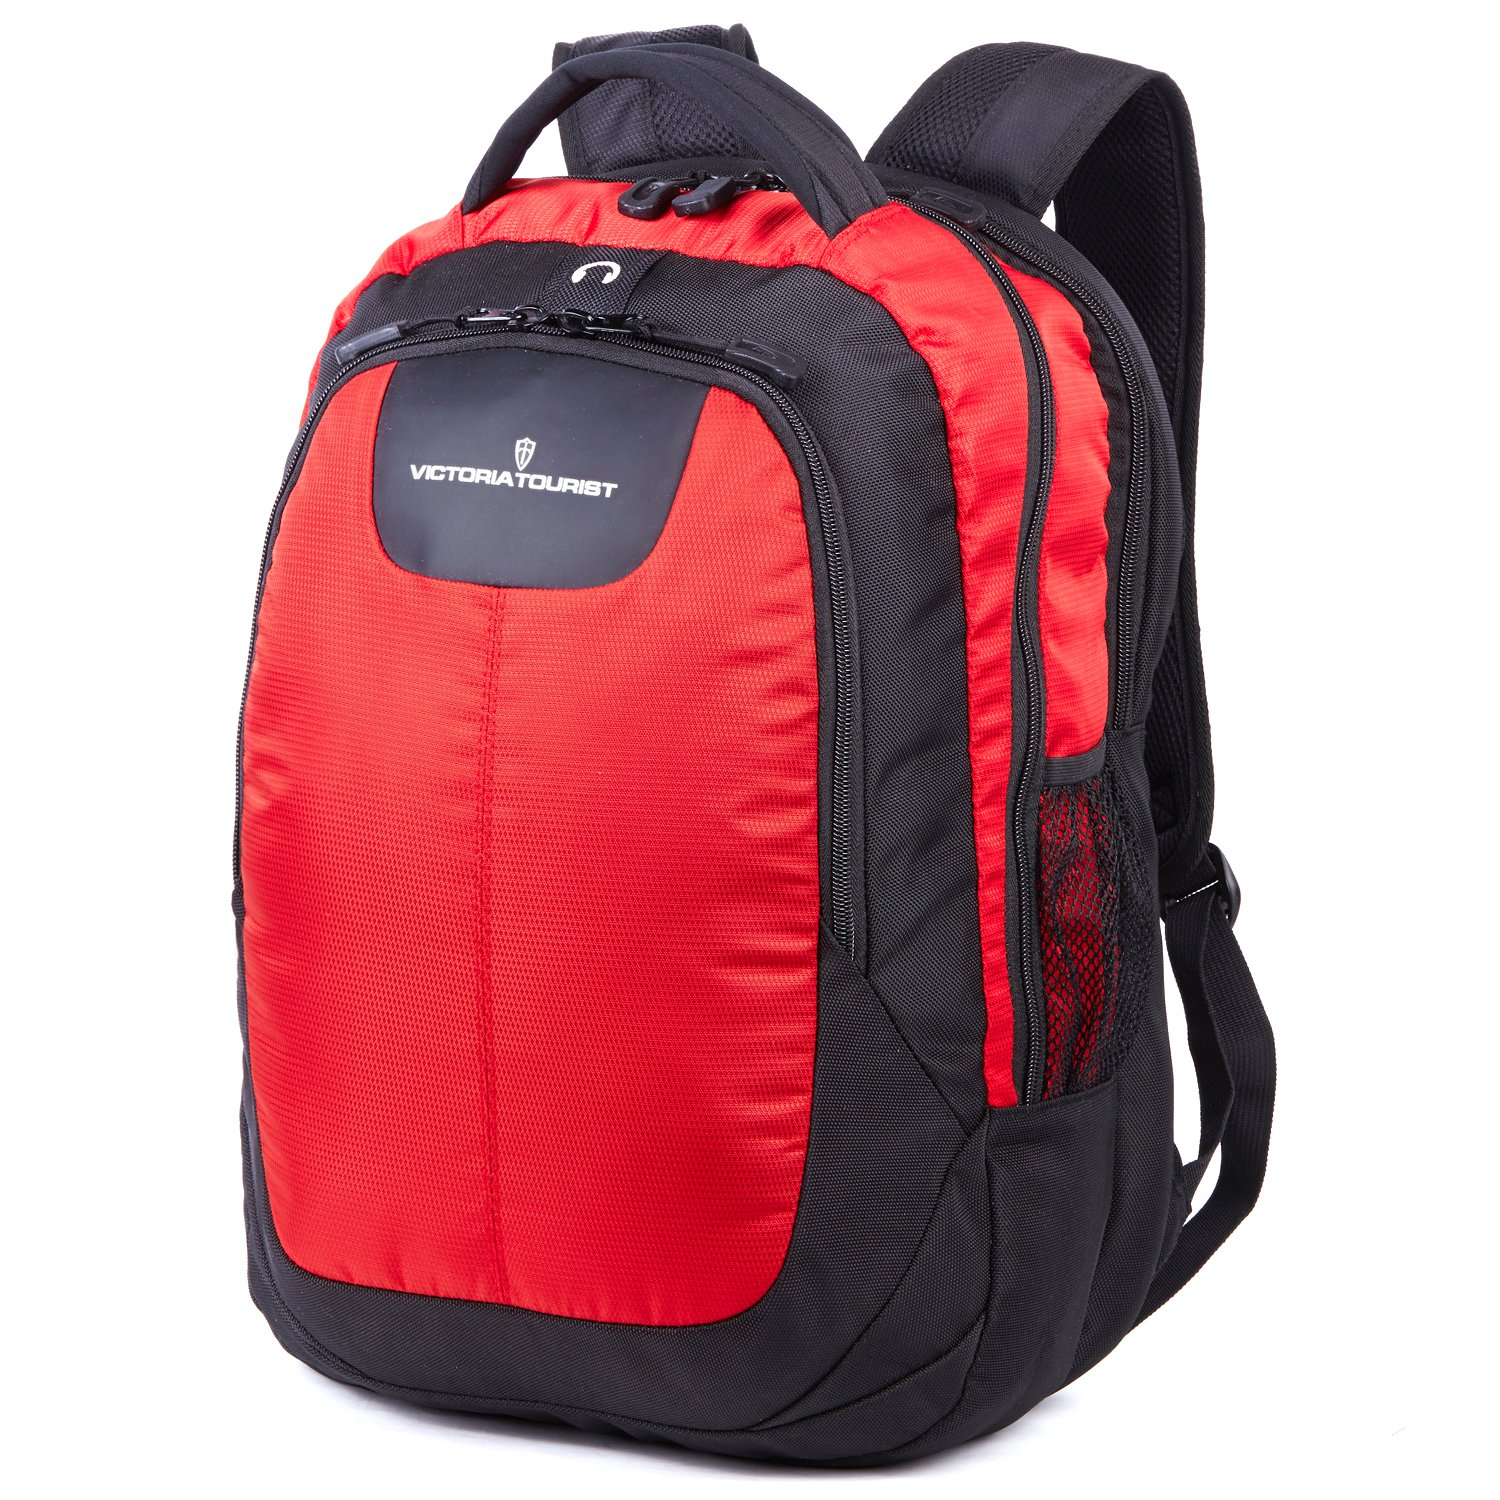 03eae9eabb5b Victoriatourist Laptop Backpack with Computer Compartment Fits up to 15.6  inches (red8002)